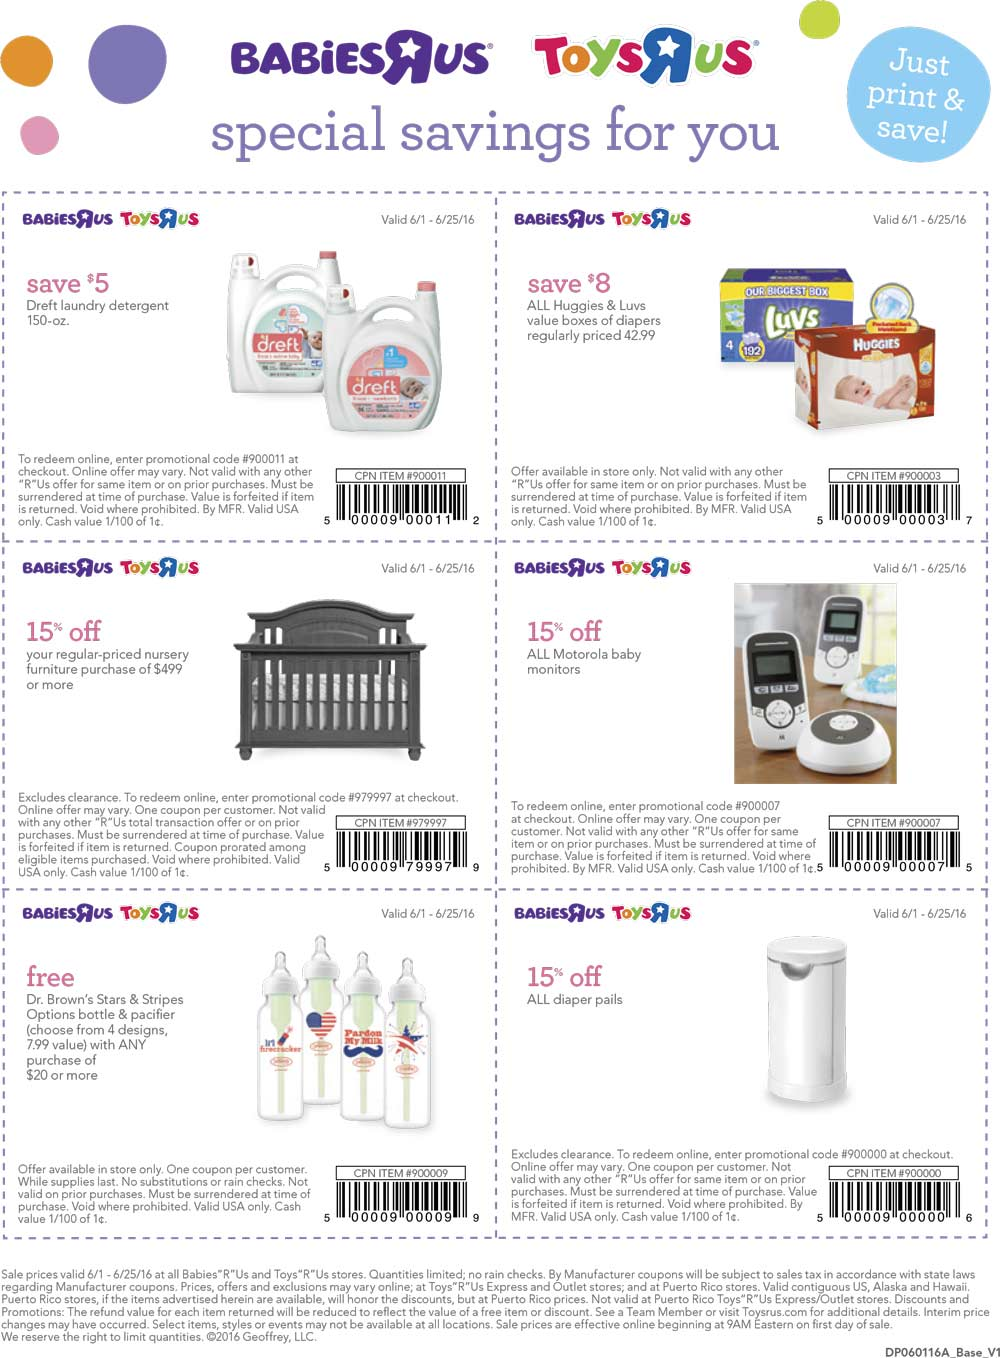 Babies R Us Coupon August 2018 $8 off diapers, free bottle & more at Babies R Us & Toys R Us